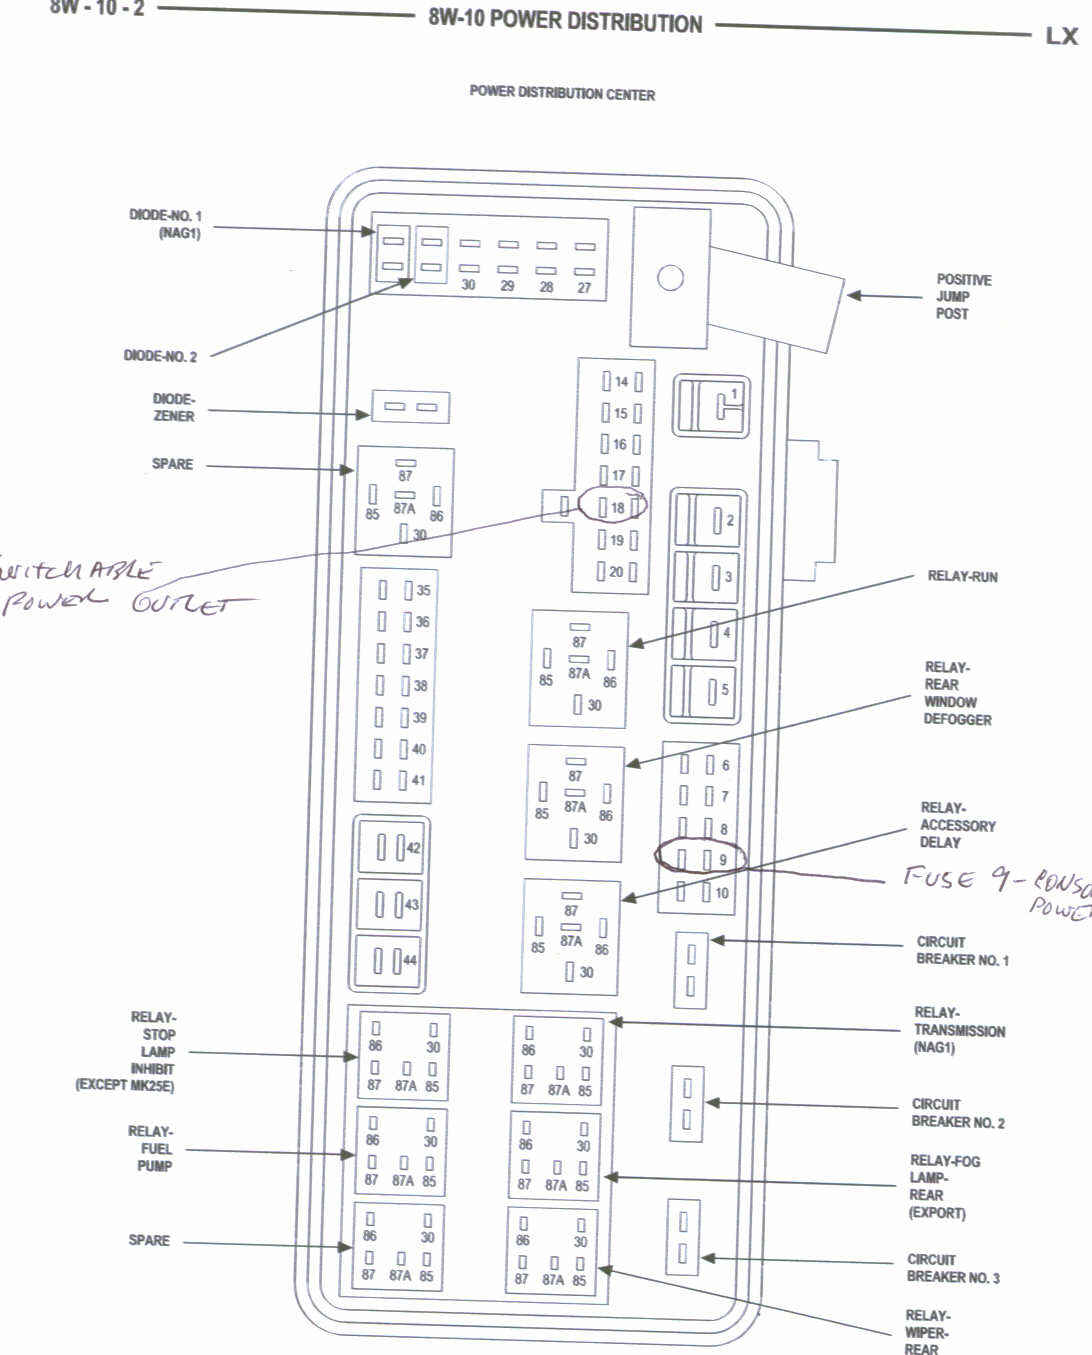 2005 chrysler 300 front fuse box layout - schema wiring diagrams  state-recent - state-recent.cultlab.it  cultlab.it